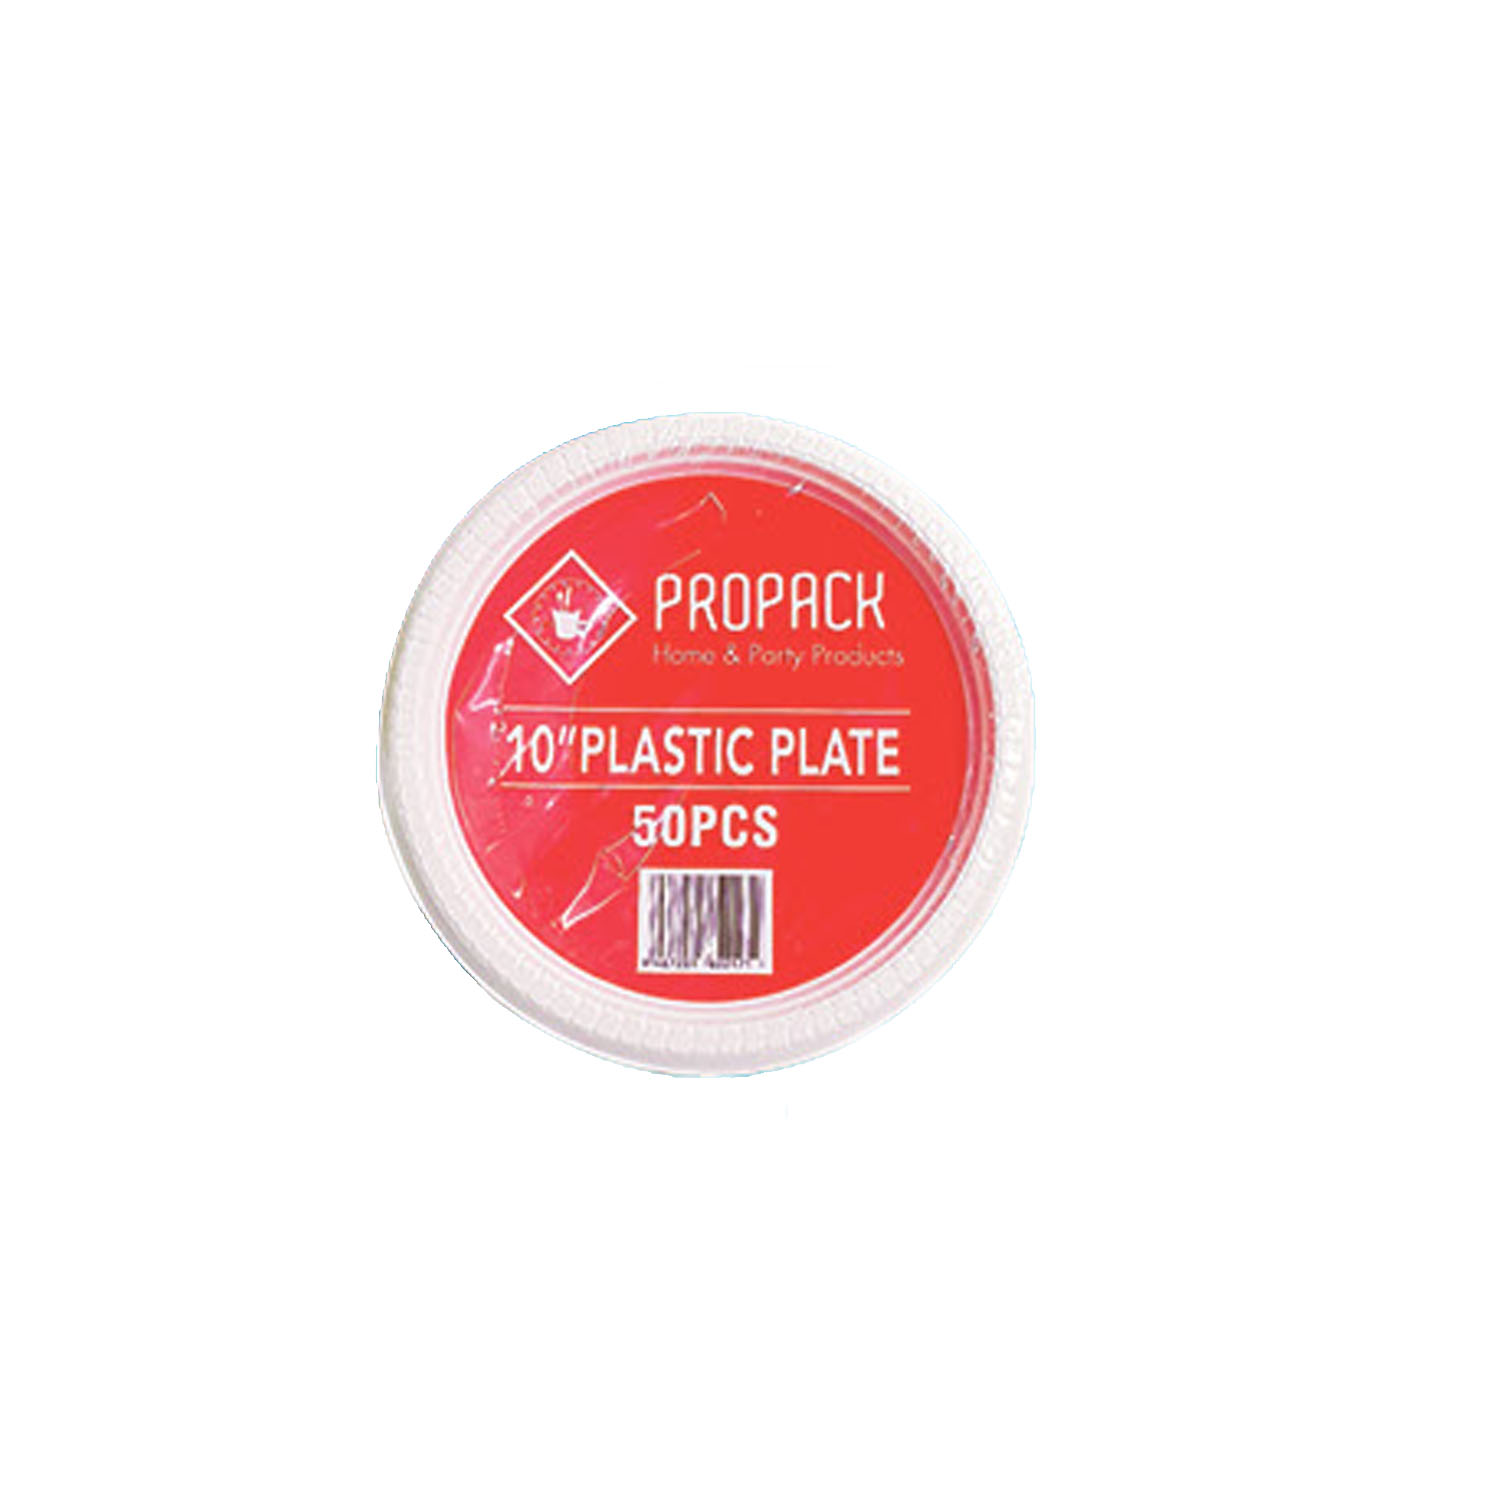 Propack 10inch Plastic Plate 50s